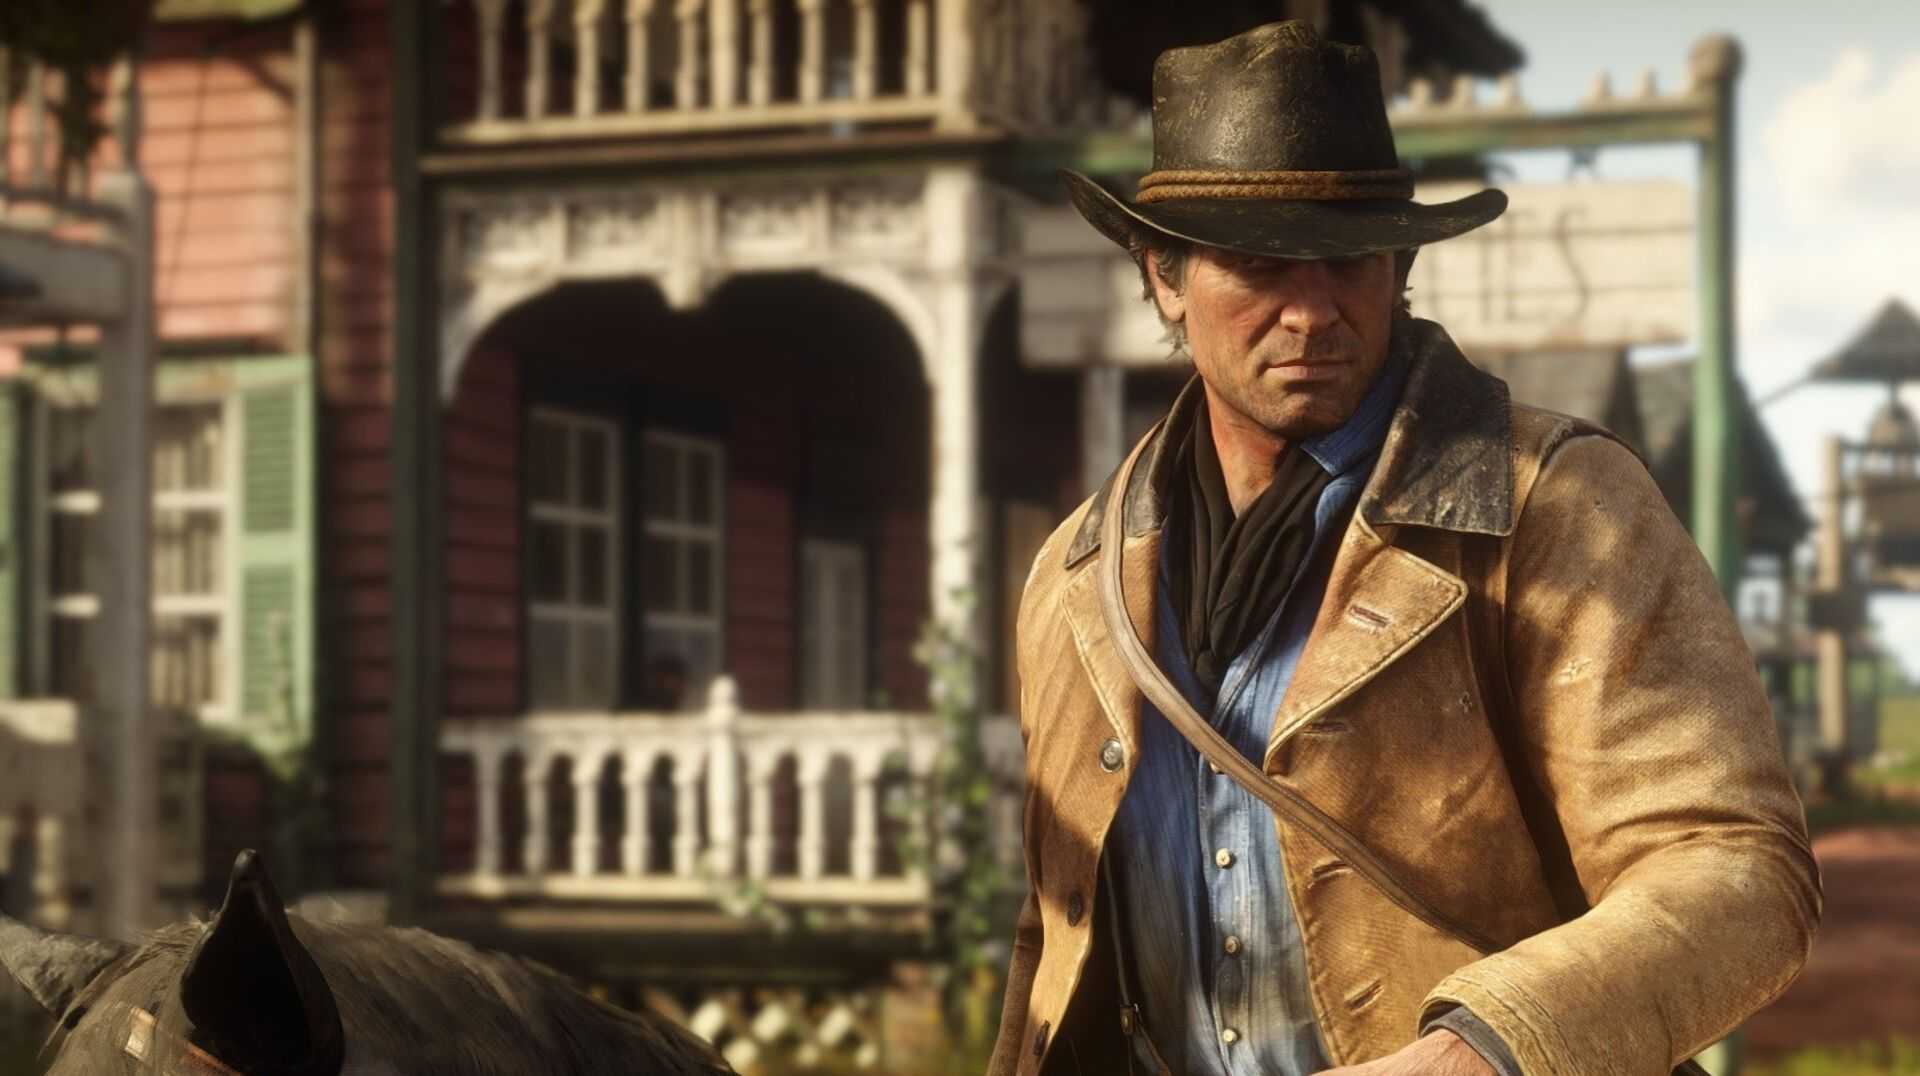 Gamestop employees claim new Red Dead Redemption 2 demo put